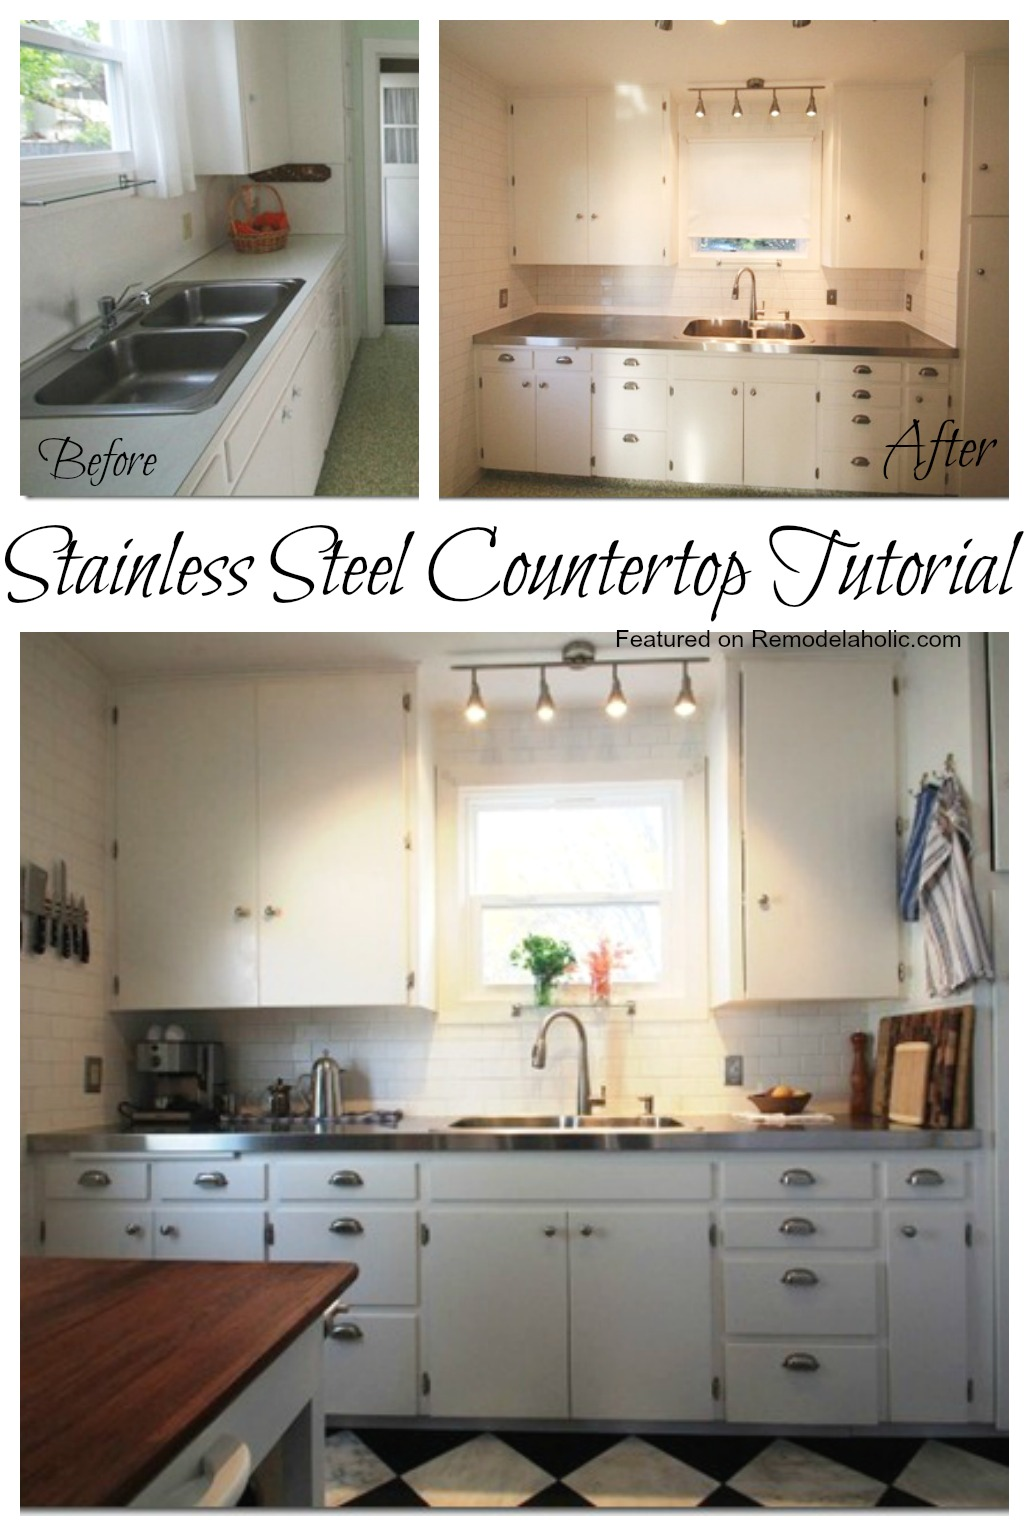 Affordable Stainless Steel Countertops; DIY & Remodelaholic | Affordable Stainless Steel Countertops; DIY